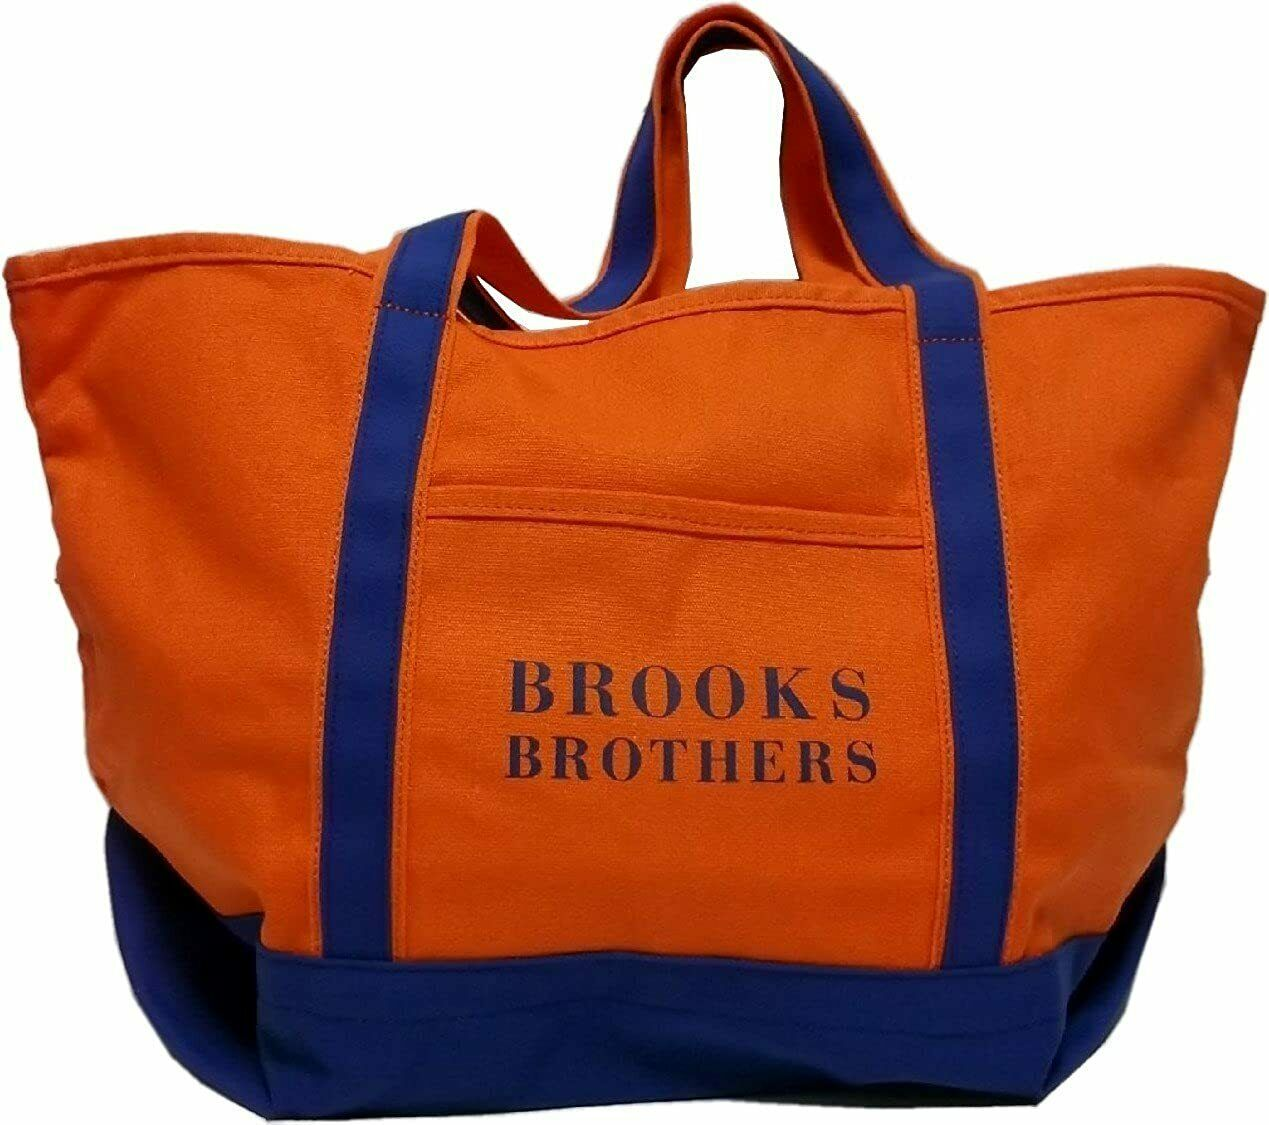 Brooks Brothers Canvas Tote Shopping Bag Orange/Blue Contrast One Size